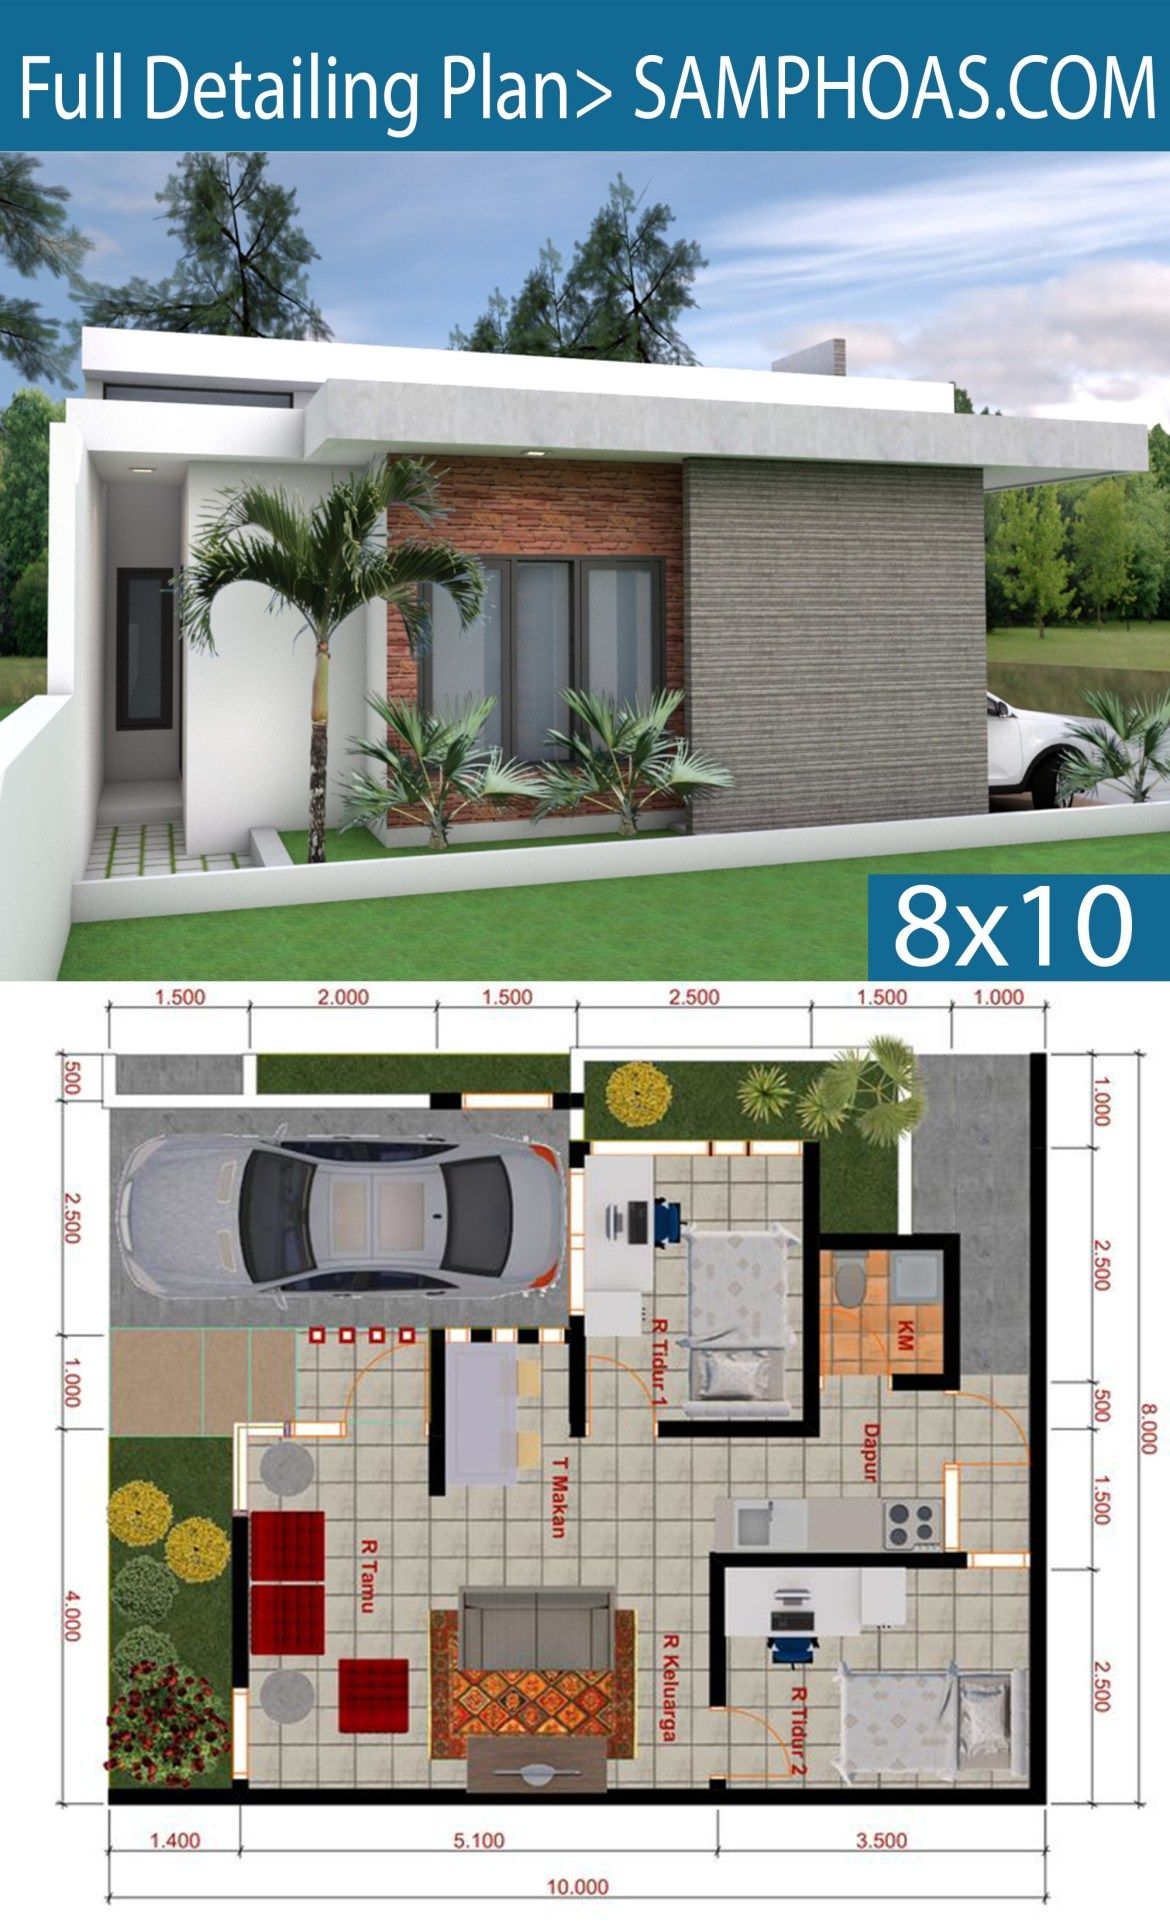 Sketchup House Modeling Idea From Photo 8x10m Samphoas Plansearch House Plans Mansion Bungalow House Plans Sims House Plans